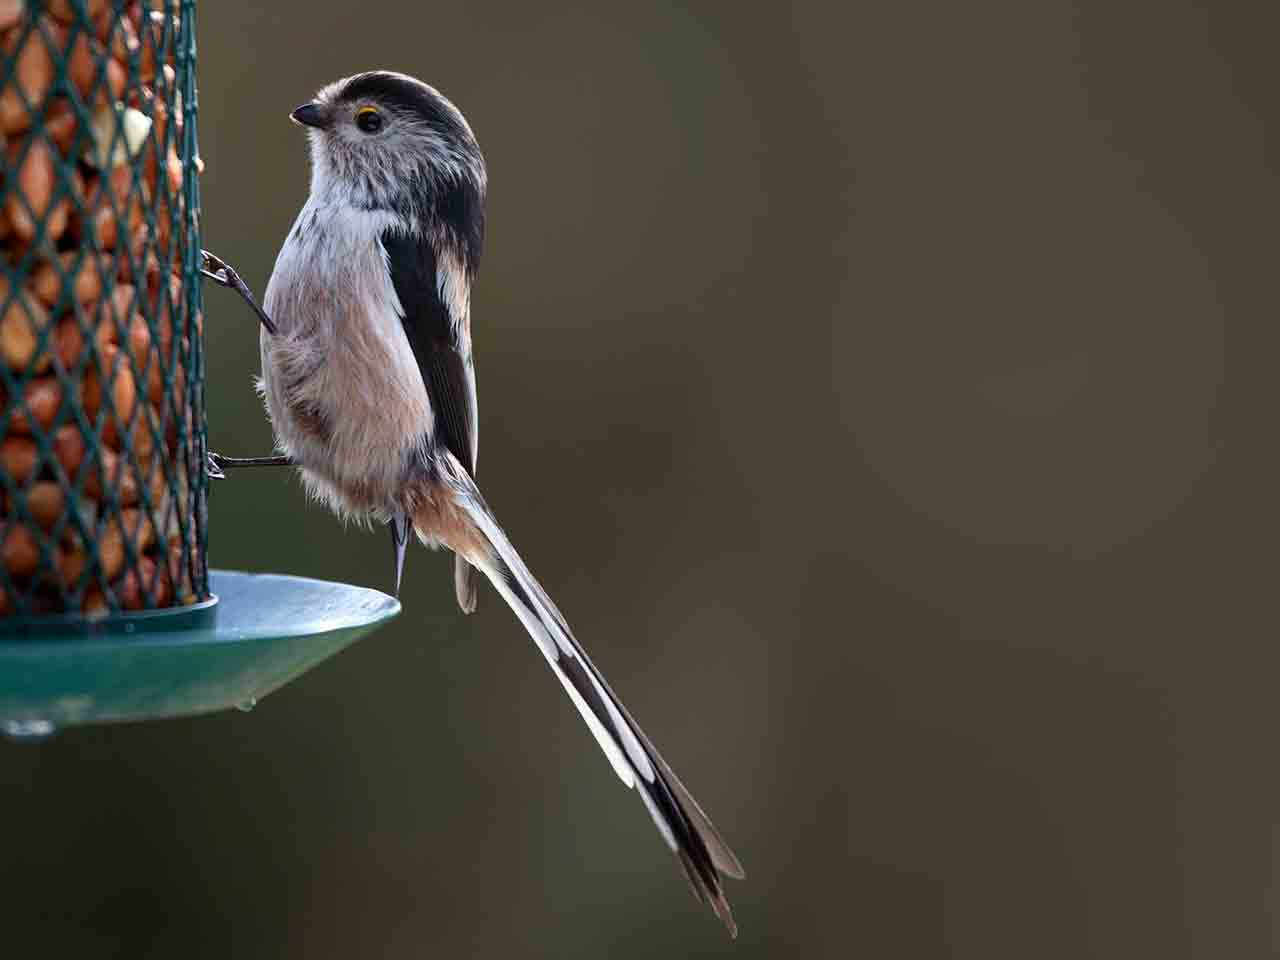 Long-tailed tit on peanut feeder